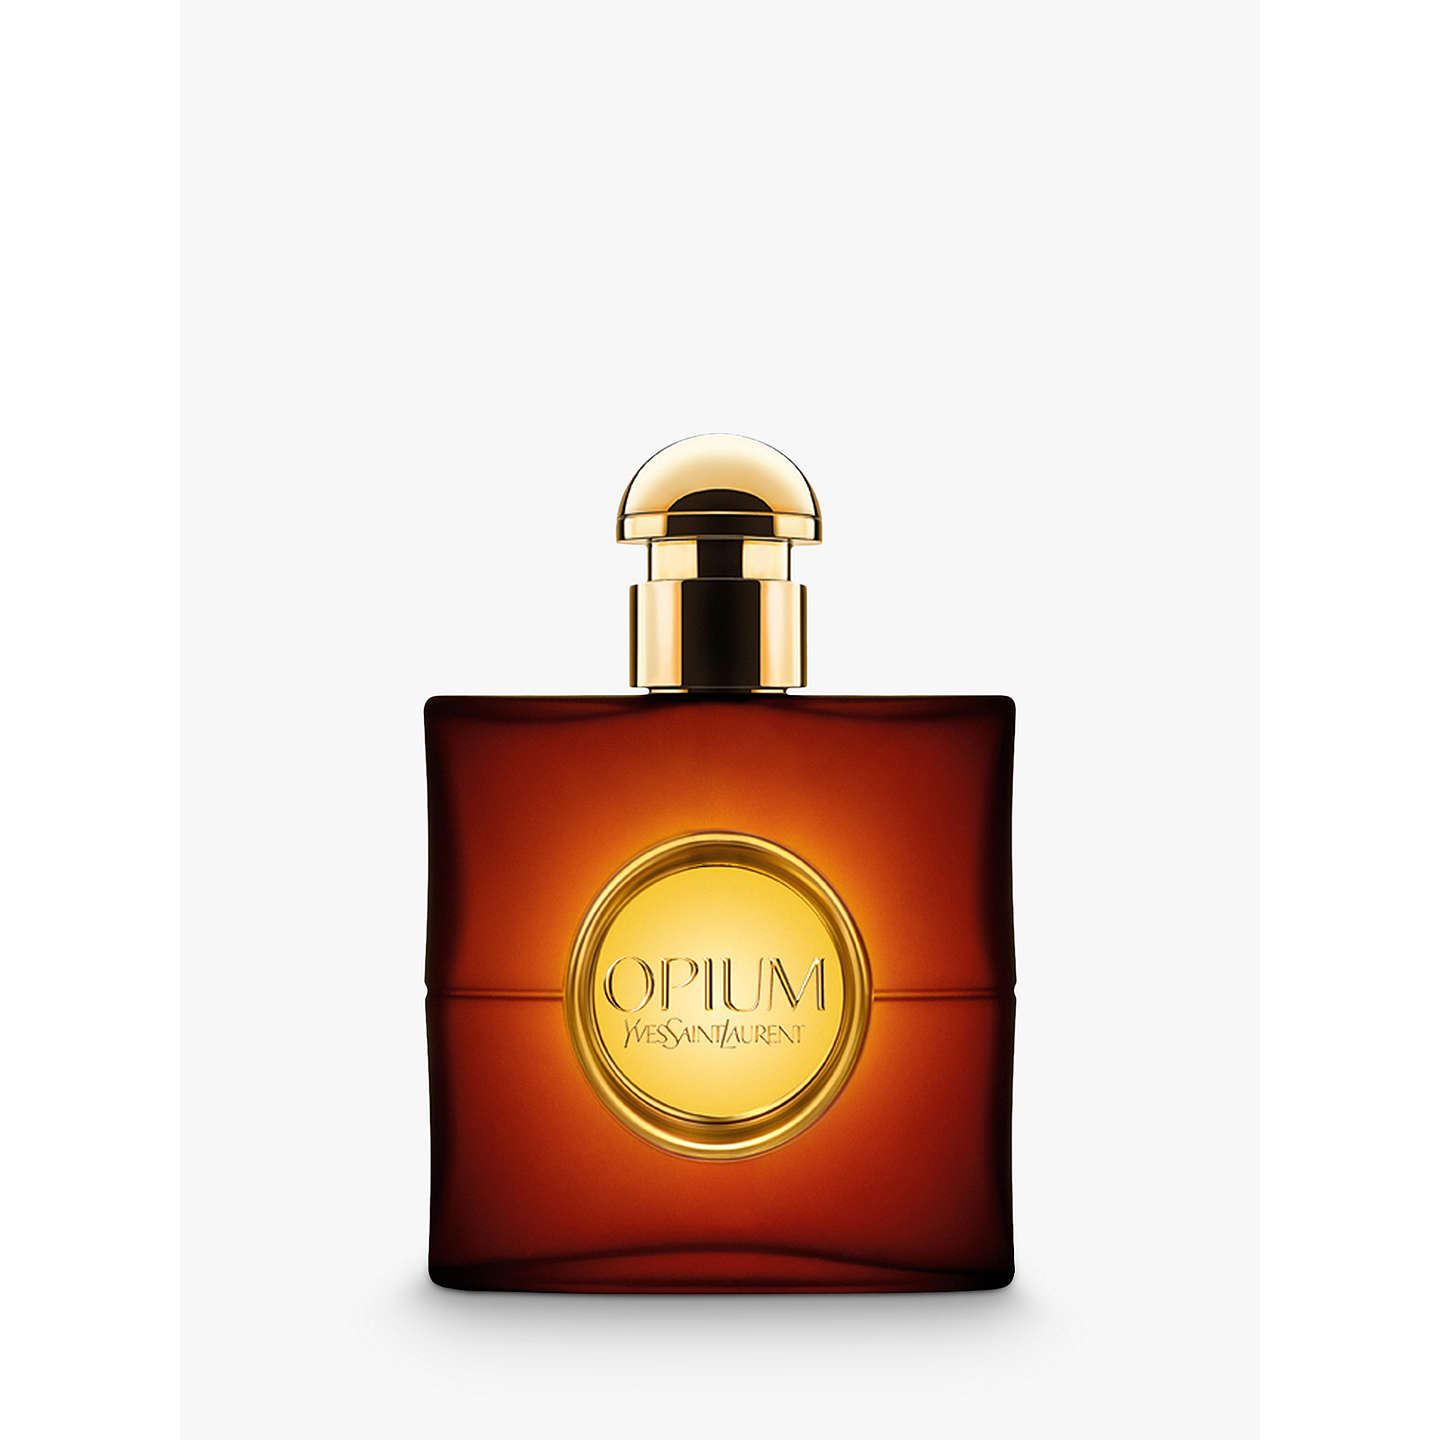 BuyYves Saint Laurent Opium Eau de Toilette, 30ml Online at johnlewis.com